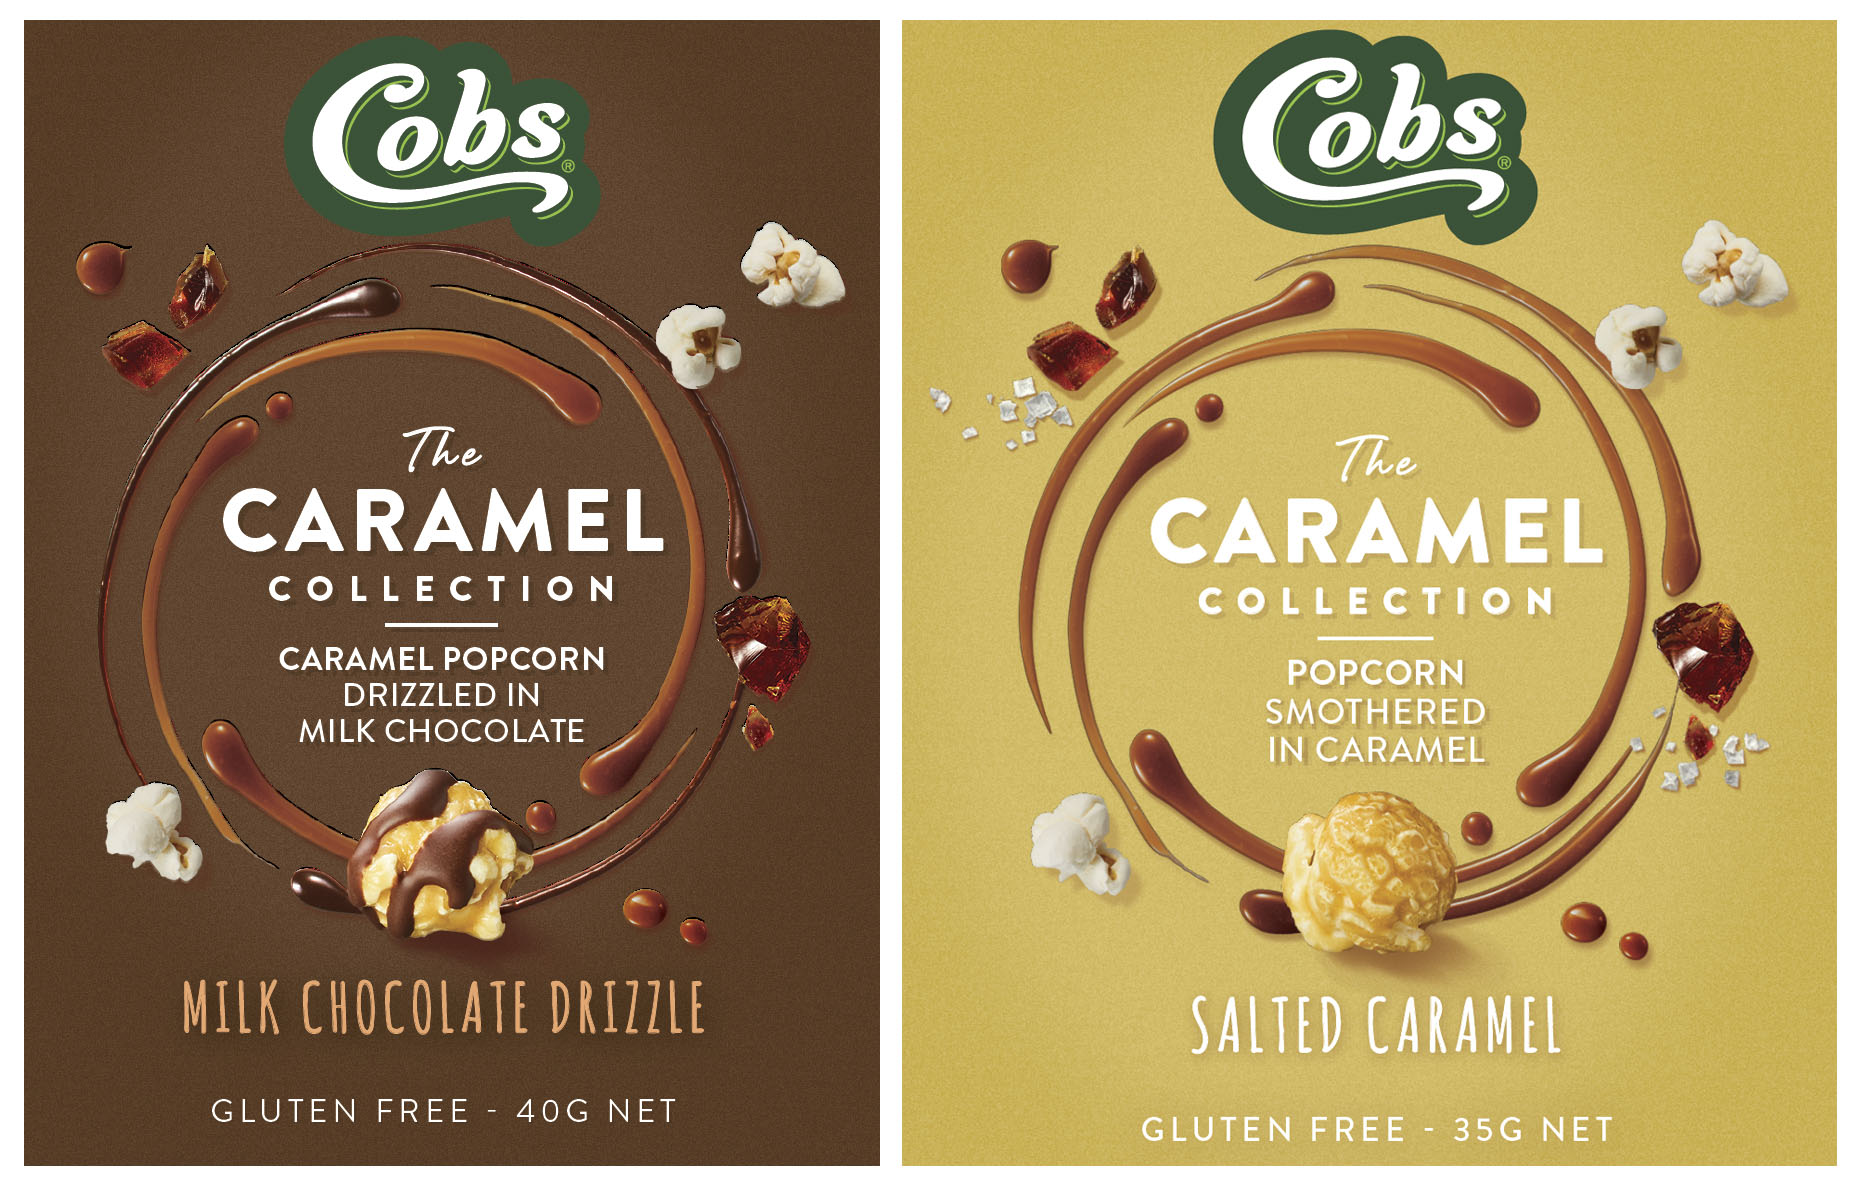 Cobs Popcorn, Ad, FMCG, Packaging, Food styling